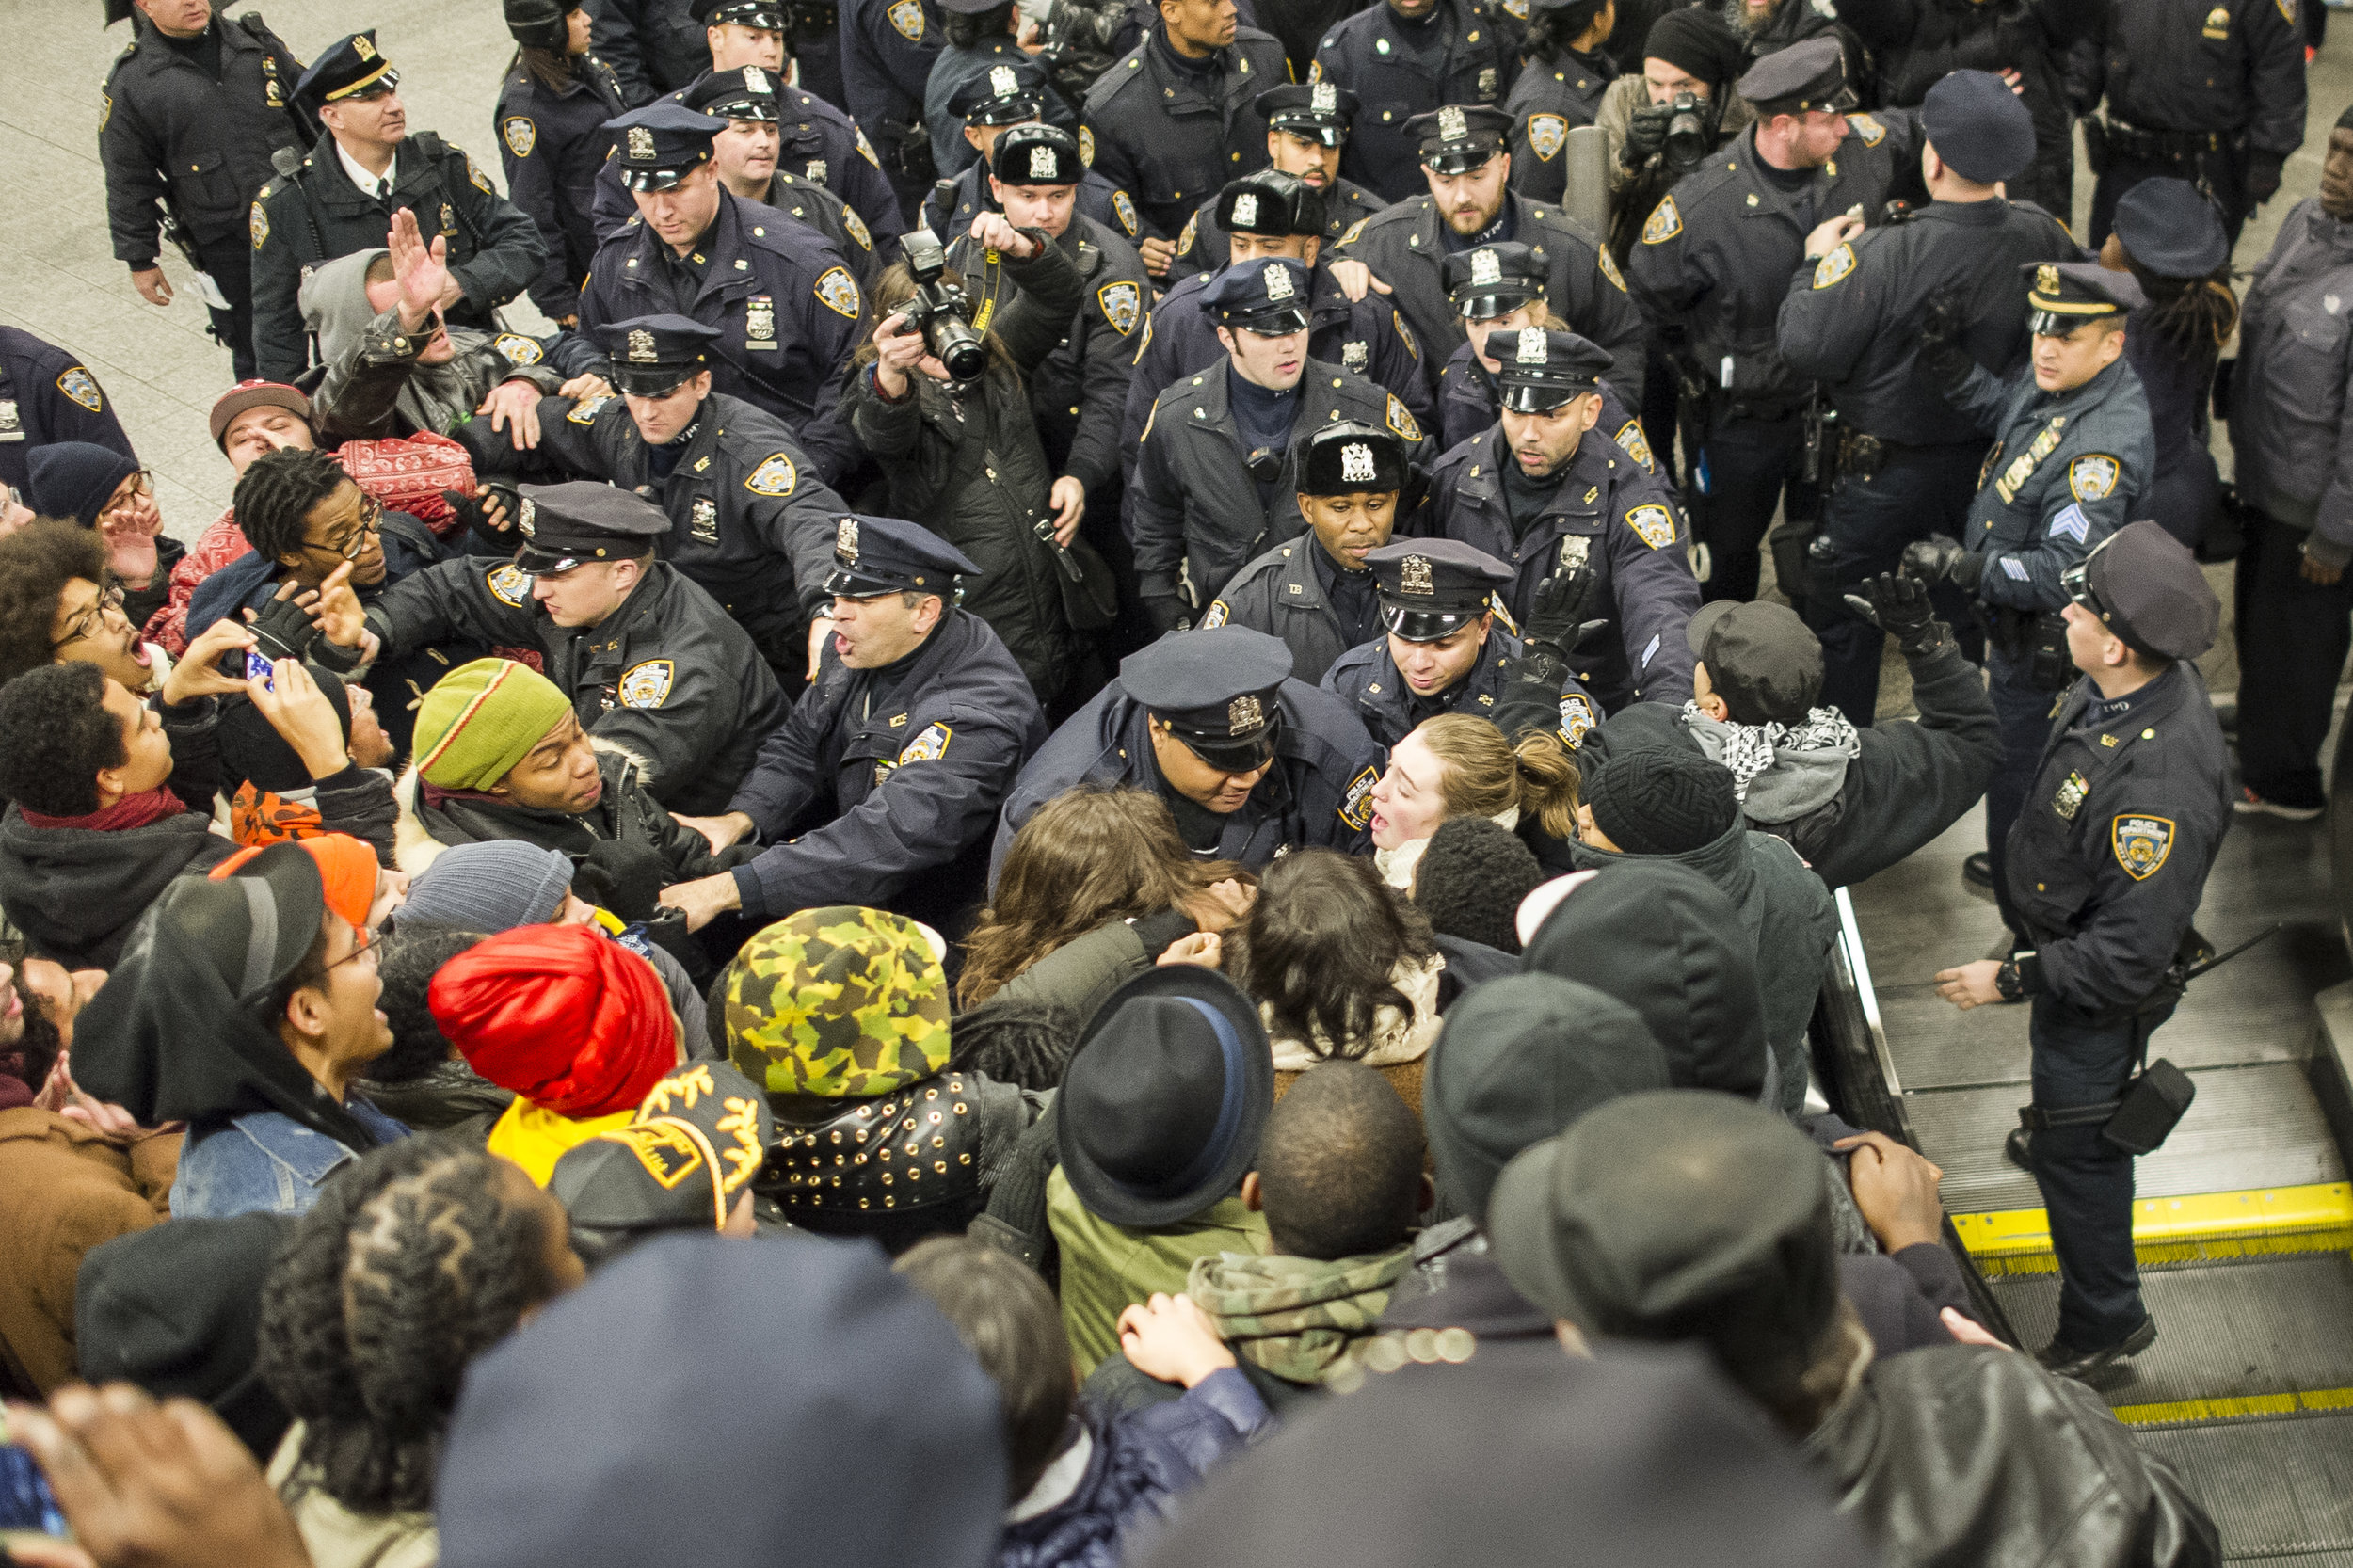 Tensions finally snap between police and protestors at the Barclays Center subway station on December 8th, 2014. Weeks of protest followed a Staten Island grand jury's decision on December 3rd 2014 not to indict Officer Daniel Pantaleo in the killing of Eric Garner.